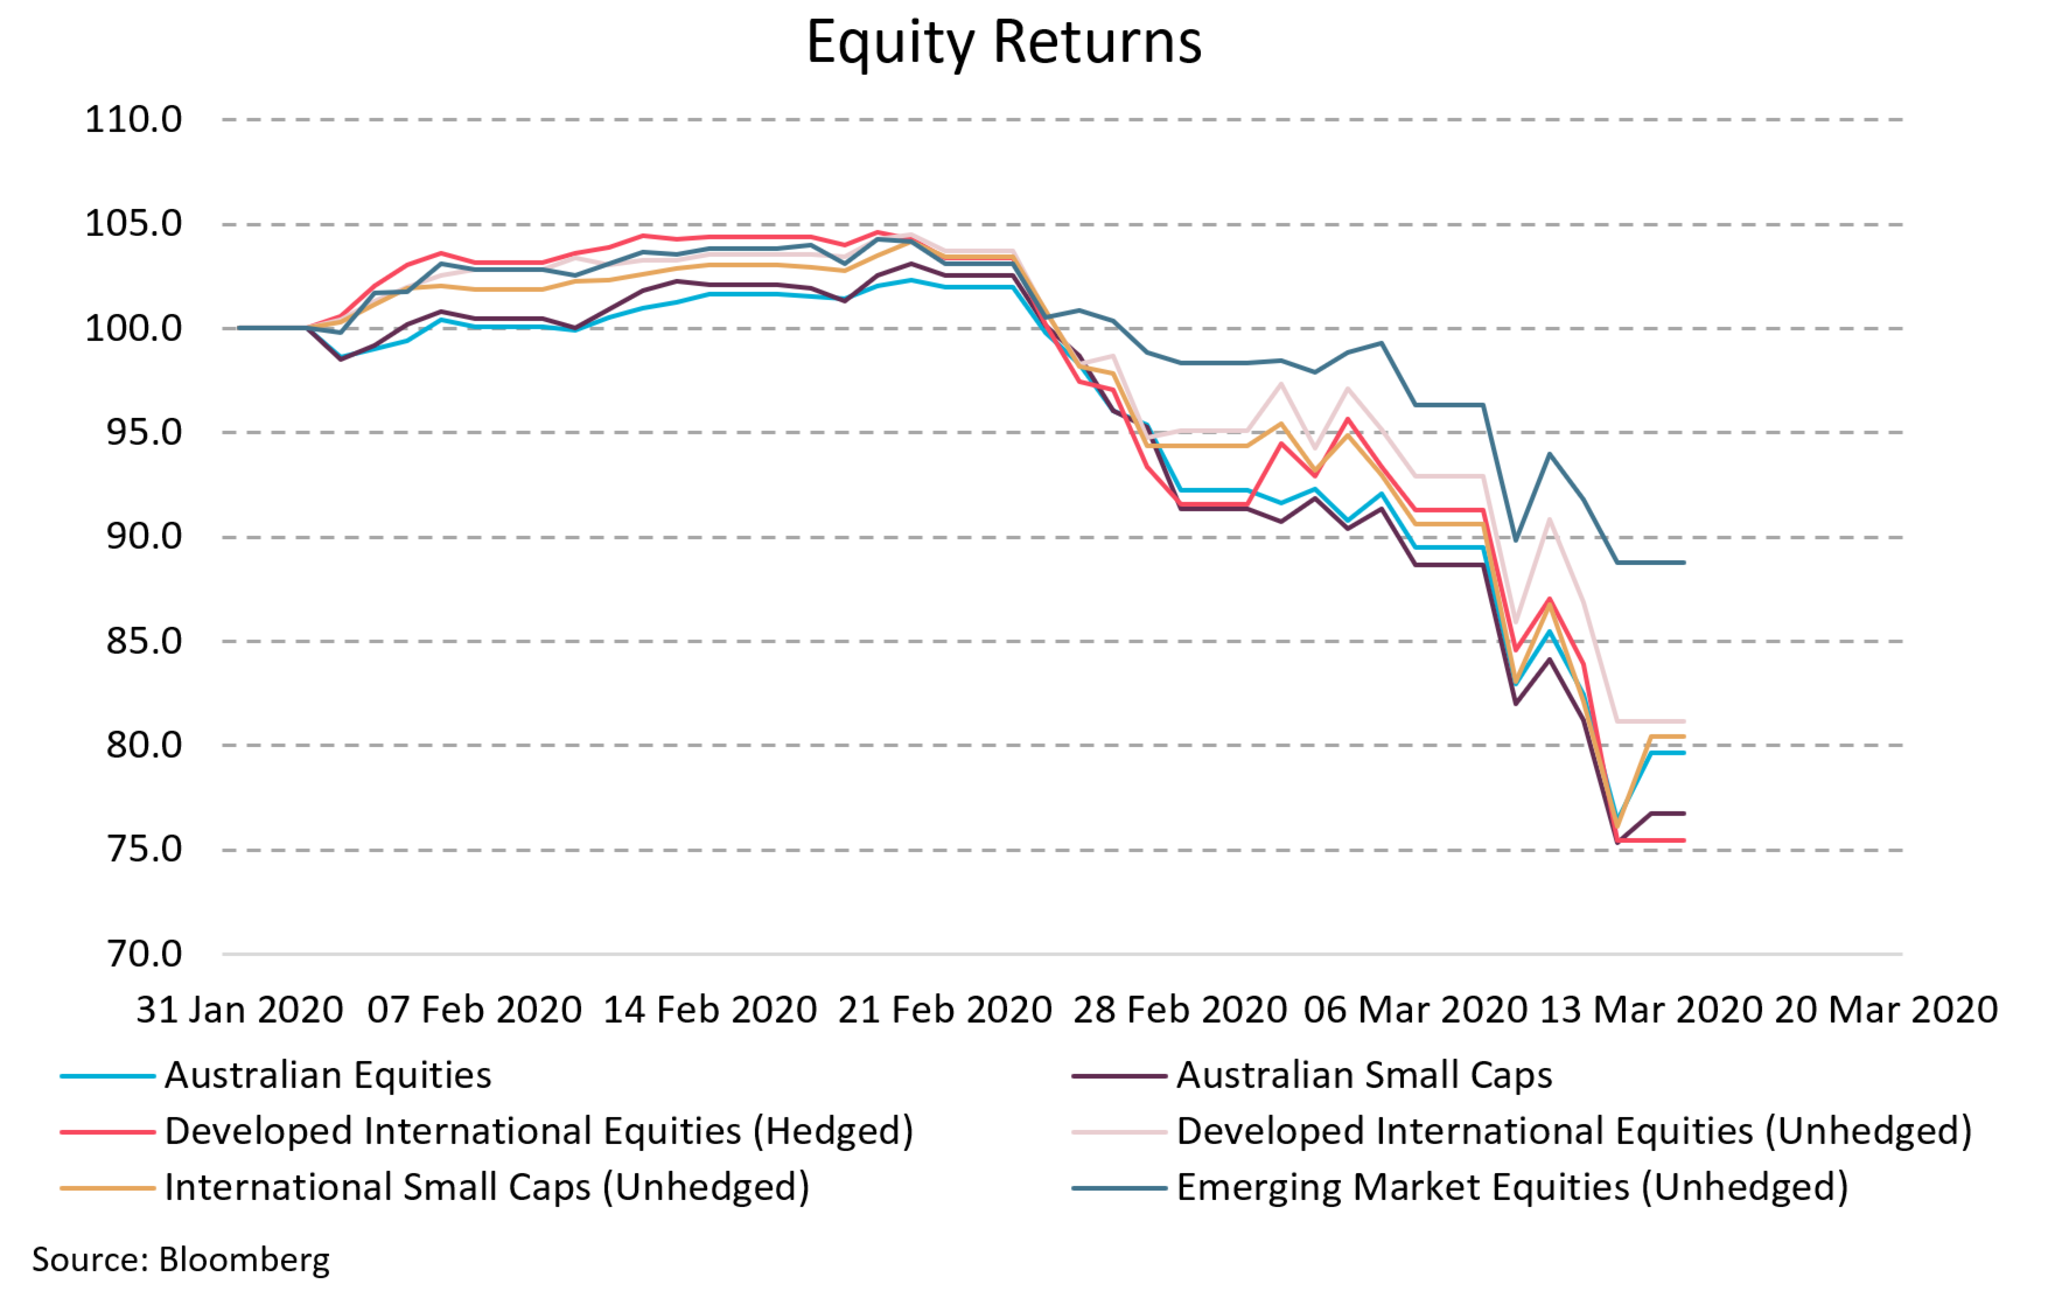 This charts displays the significance of the recent market sell-off, being on average over 25% for equity markets.